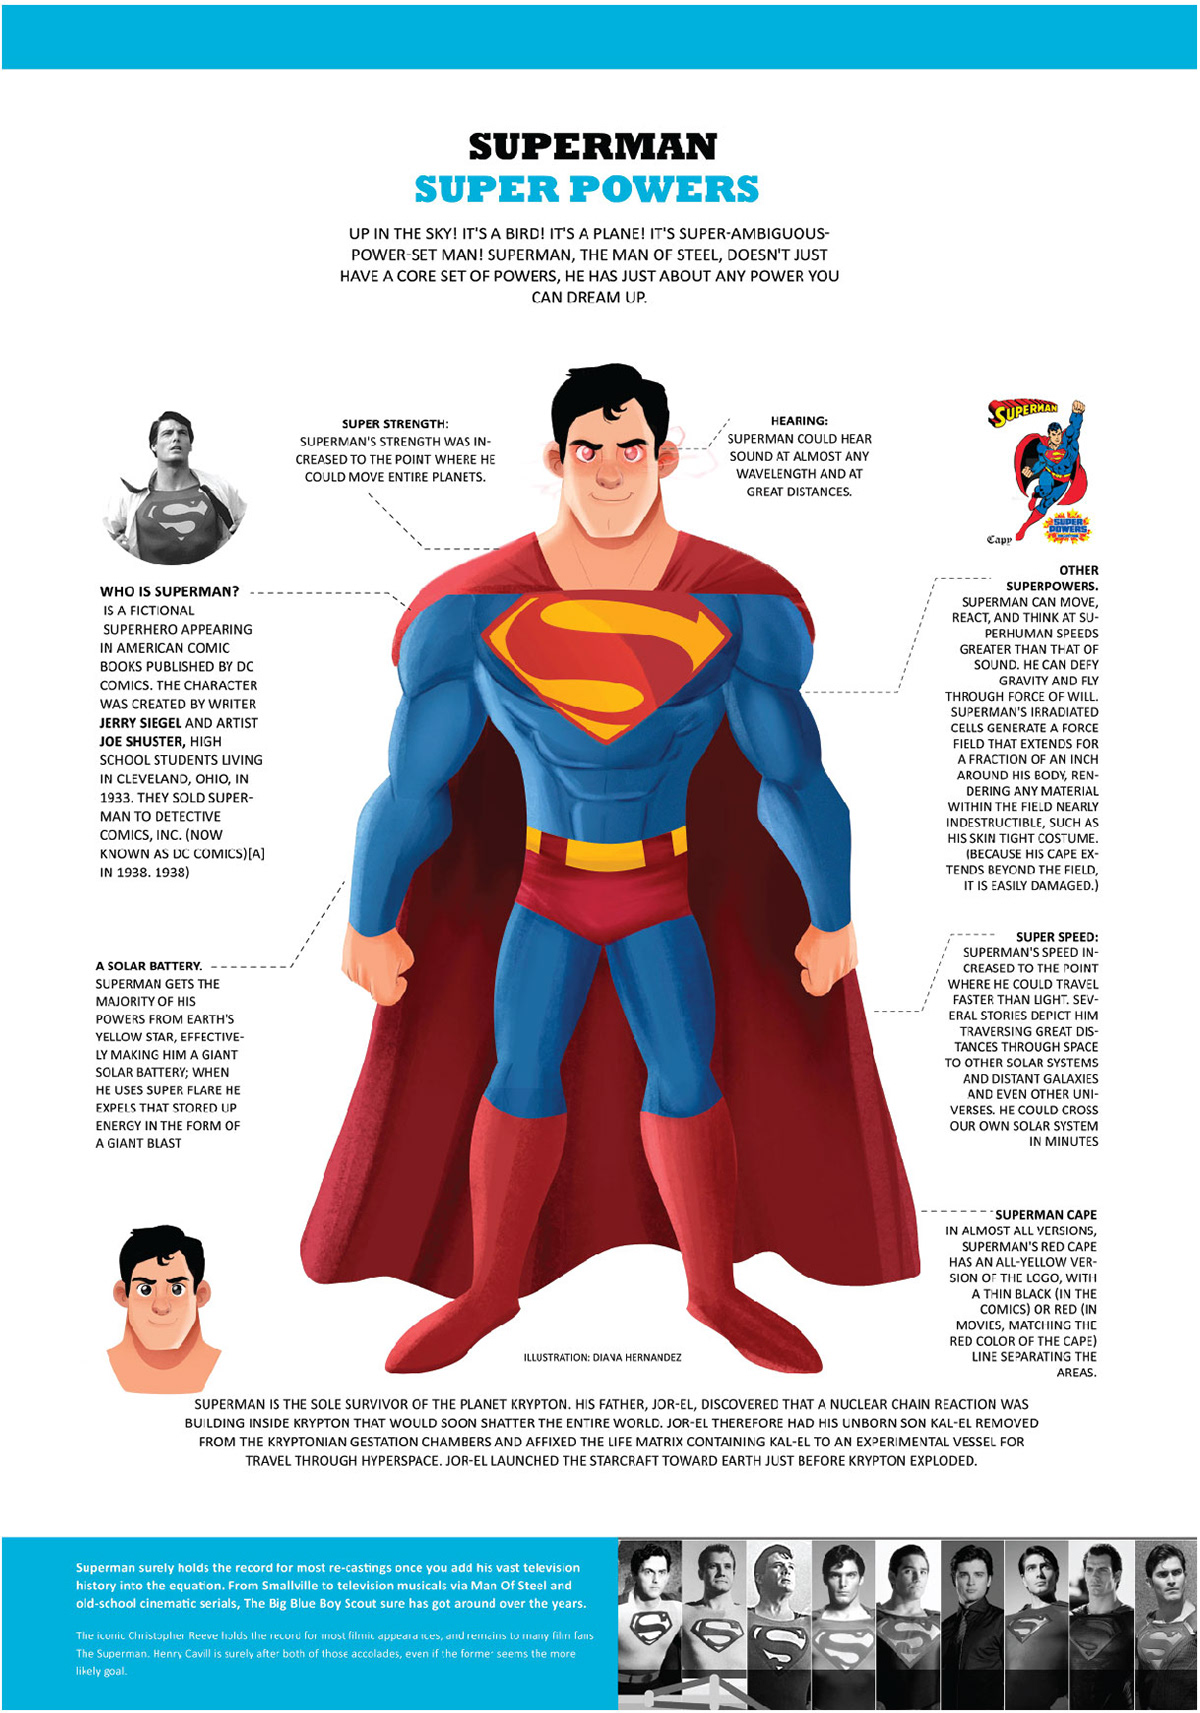 Superpowers Infographic+ gif on Behance